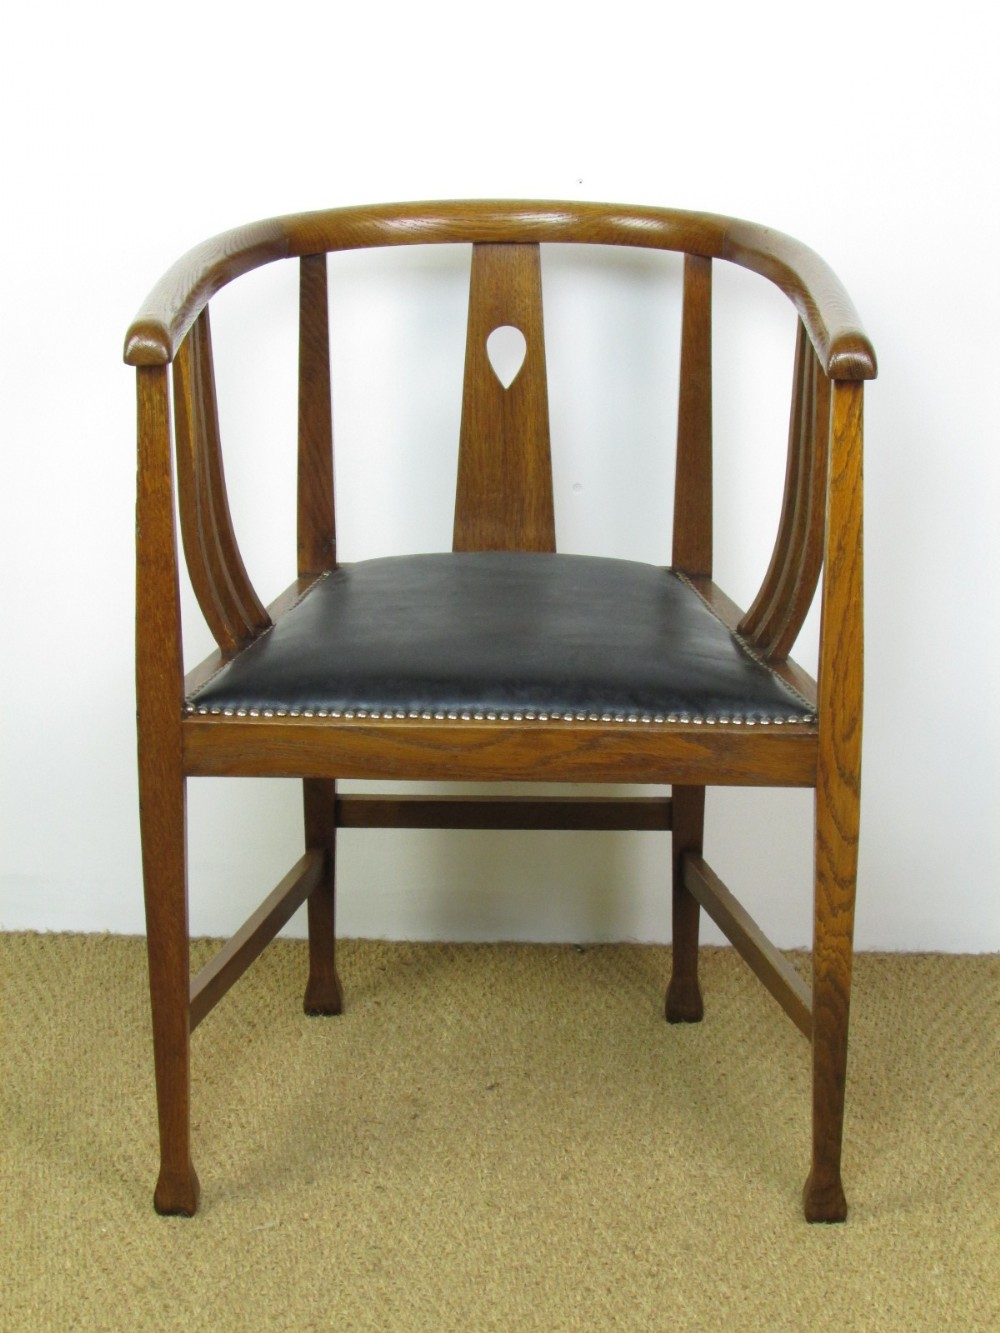 arts and crafts style chair waterproof garden covers glasgow oak tub 316022 sellingantiques